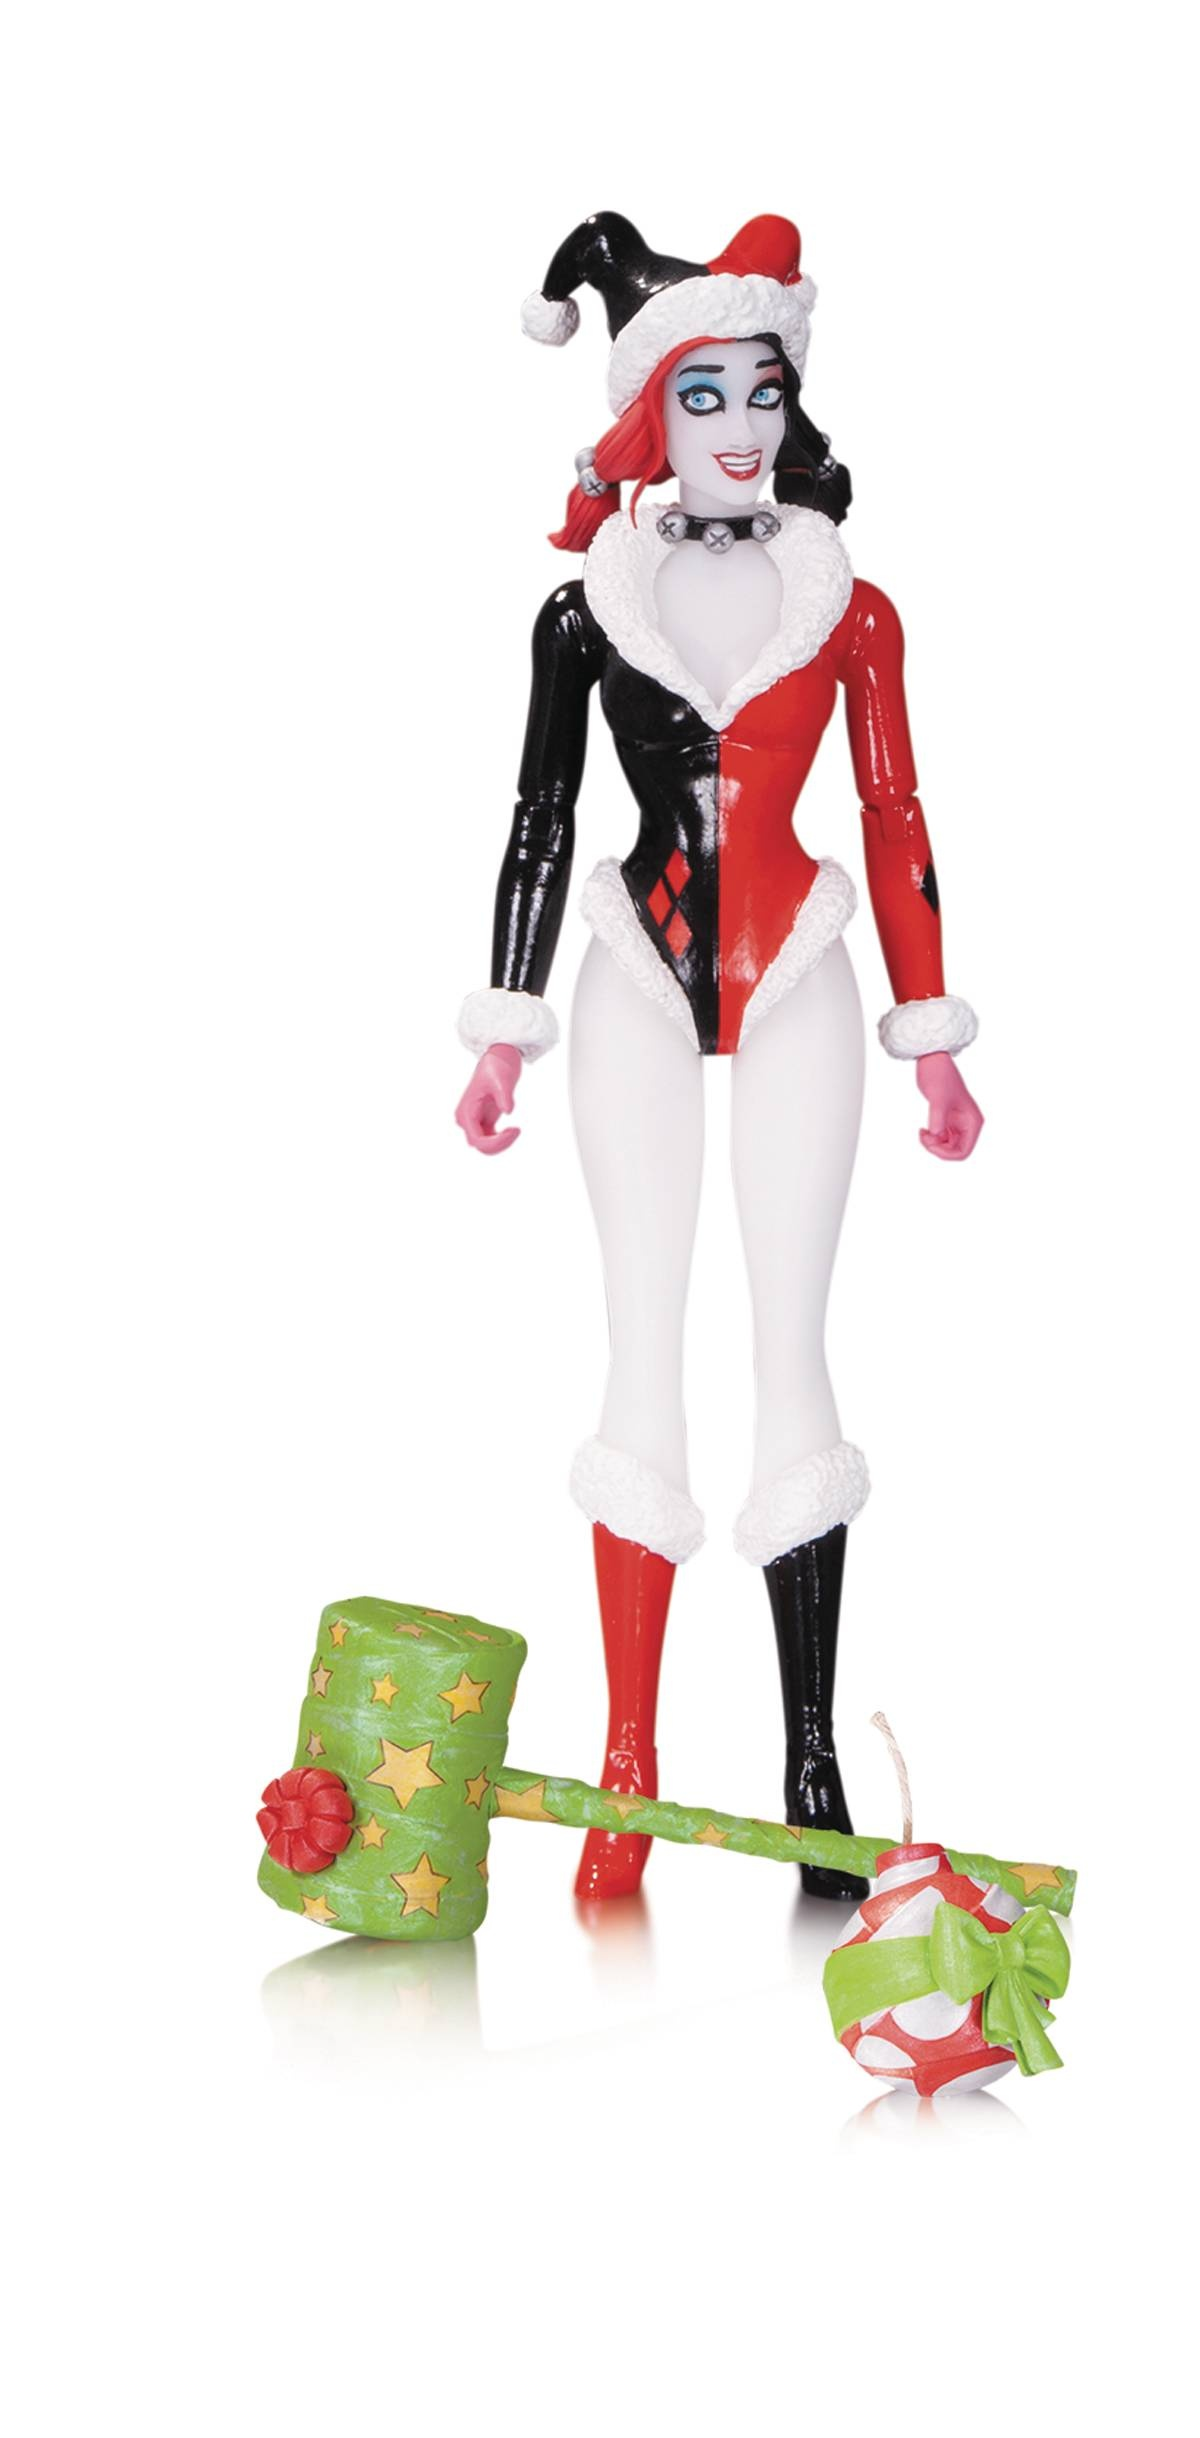 DESIGNER SERIES CONNER HOLIDAY HARLEY QUINN AF